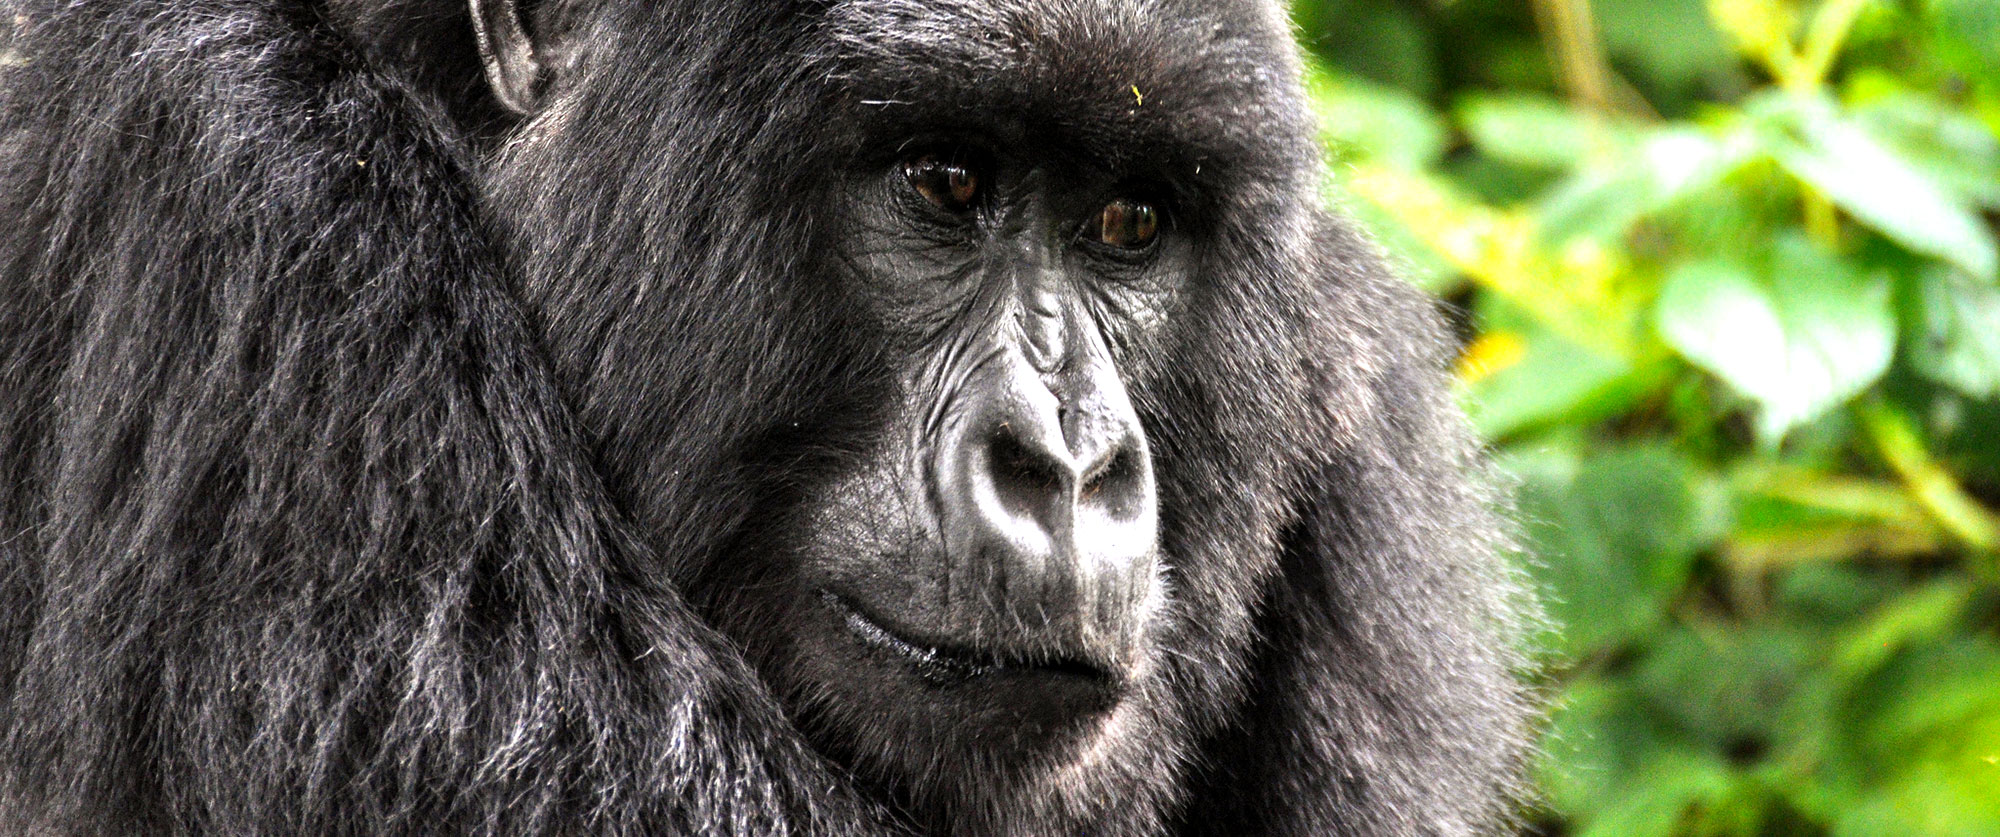 Ultimate Ugandan Wildlife Safari - Gorilla Trekking